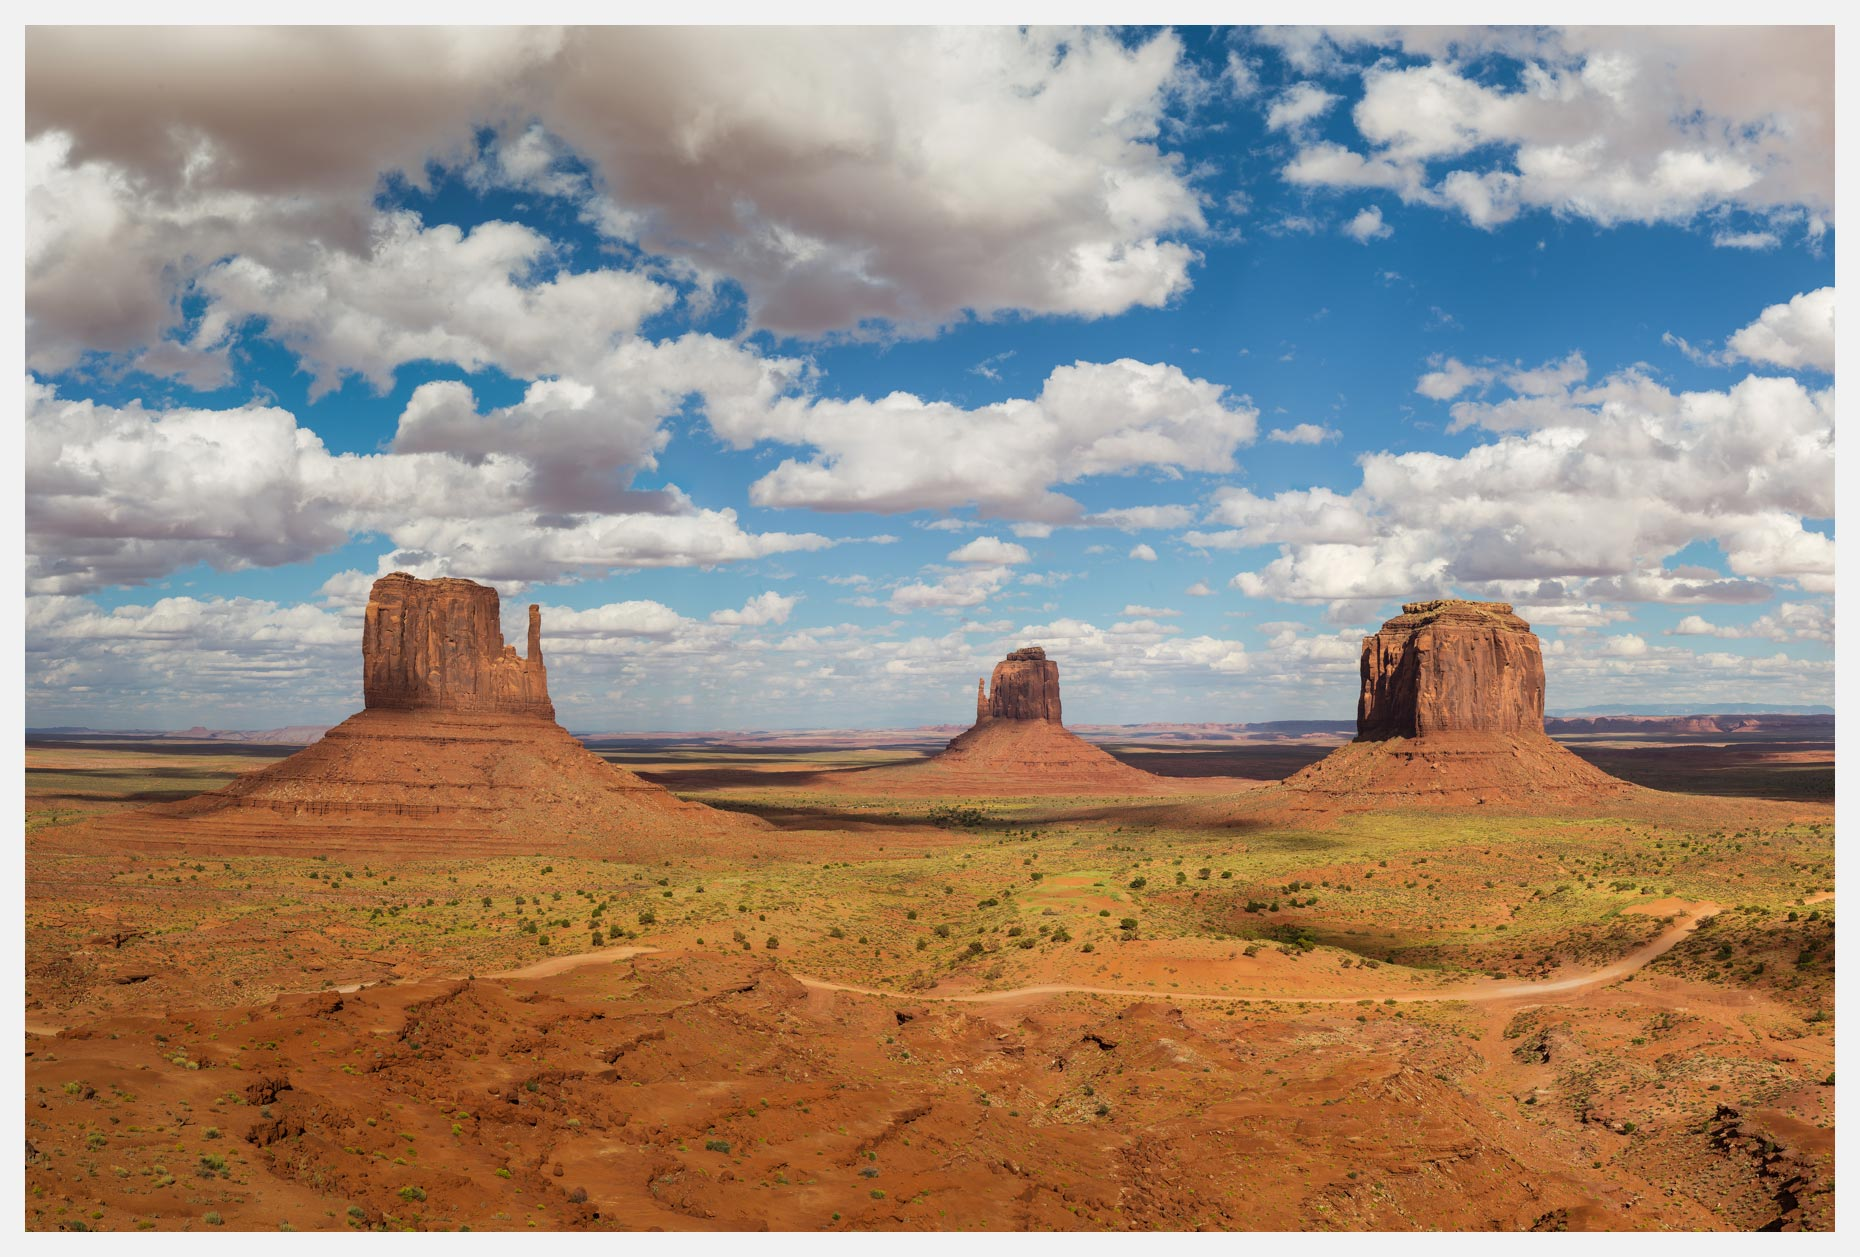 Monument-Valley-Mittens-with-Cumulus-Clouds